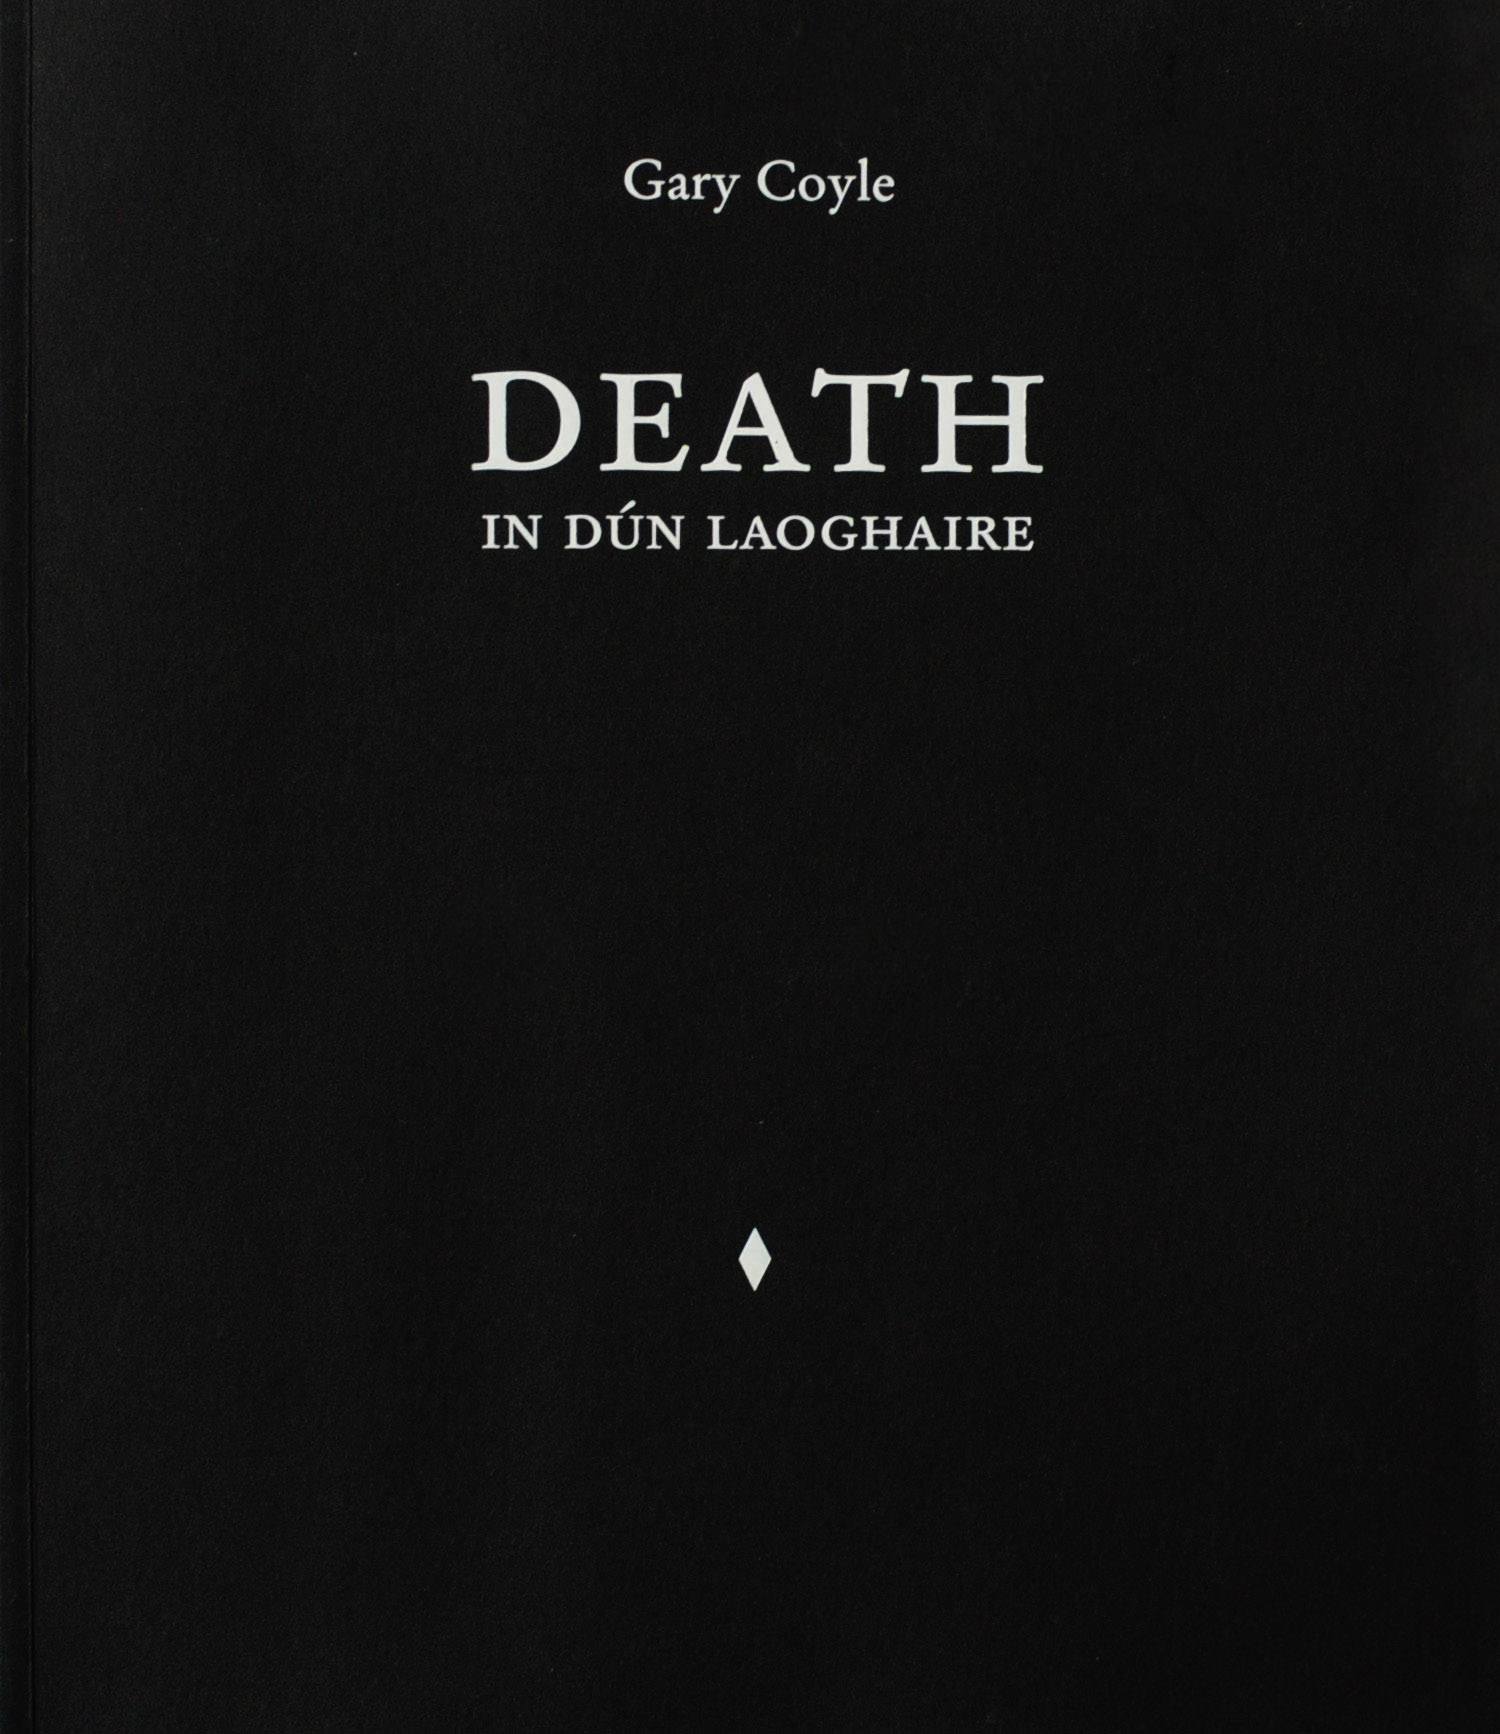 Gary_Coyle_cover copy